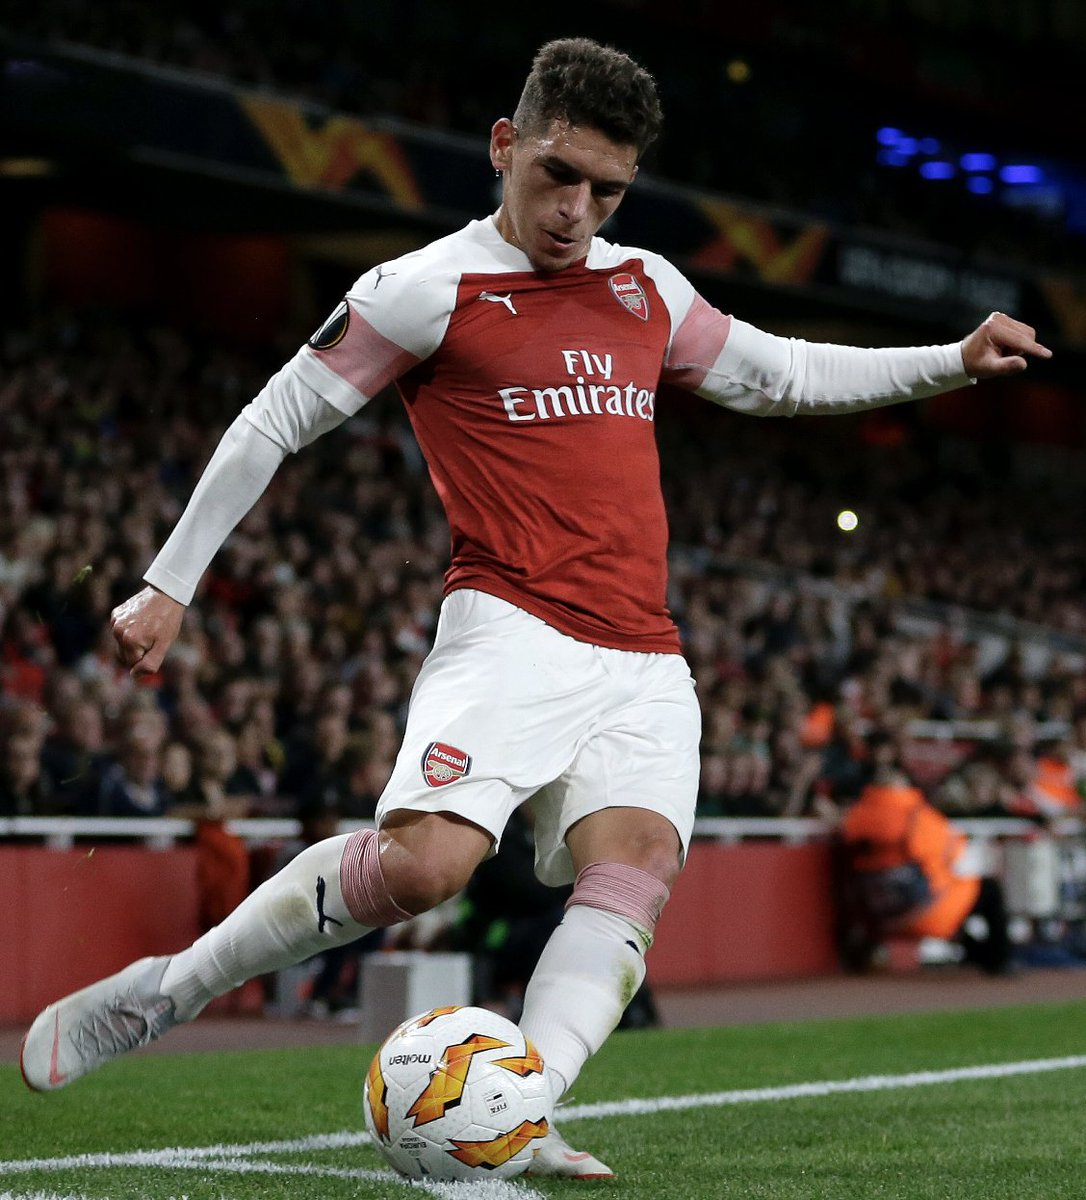 Emery targets defensive stability as Arsenal claim win in Europa League opener